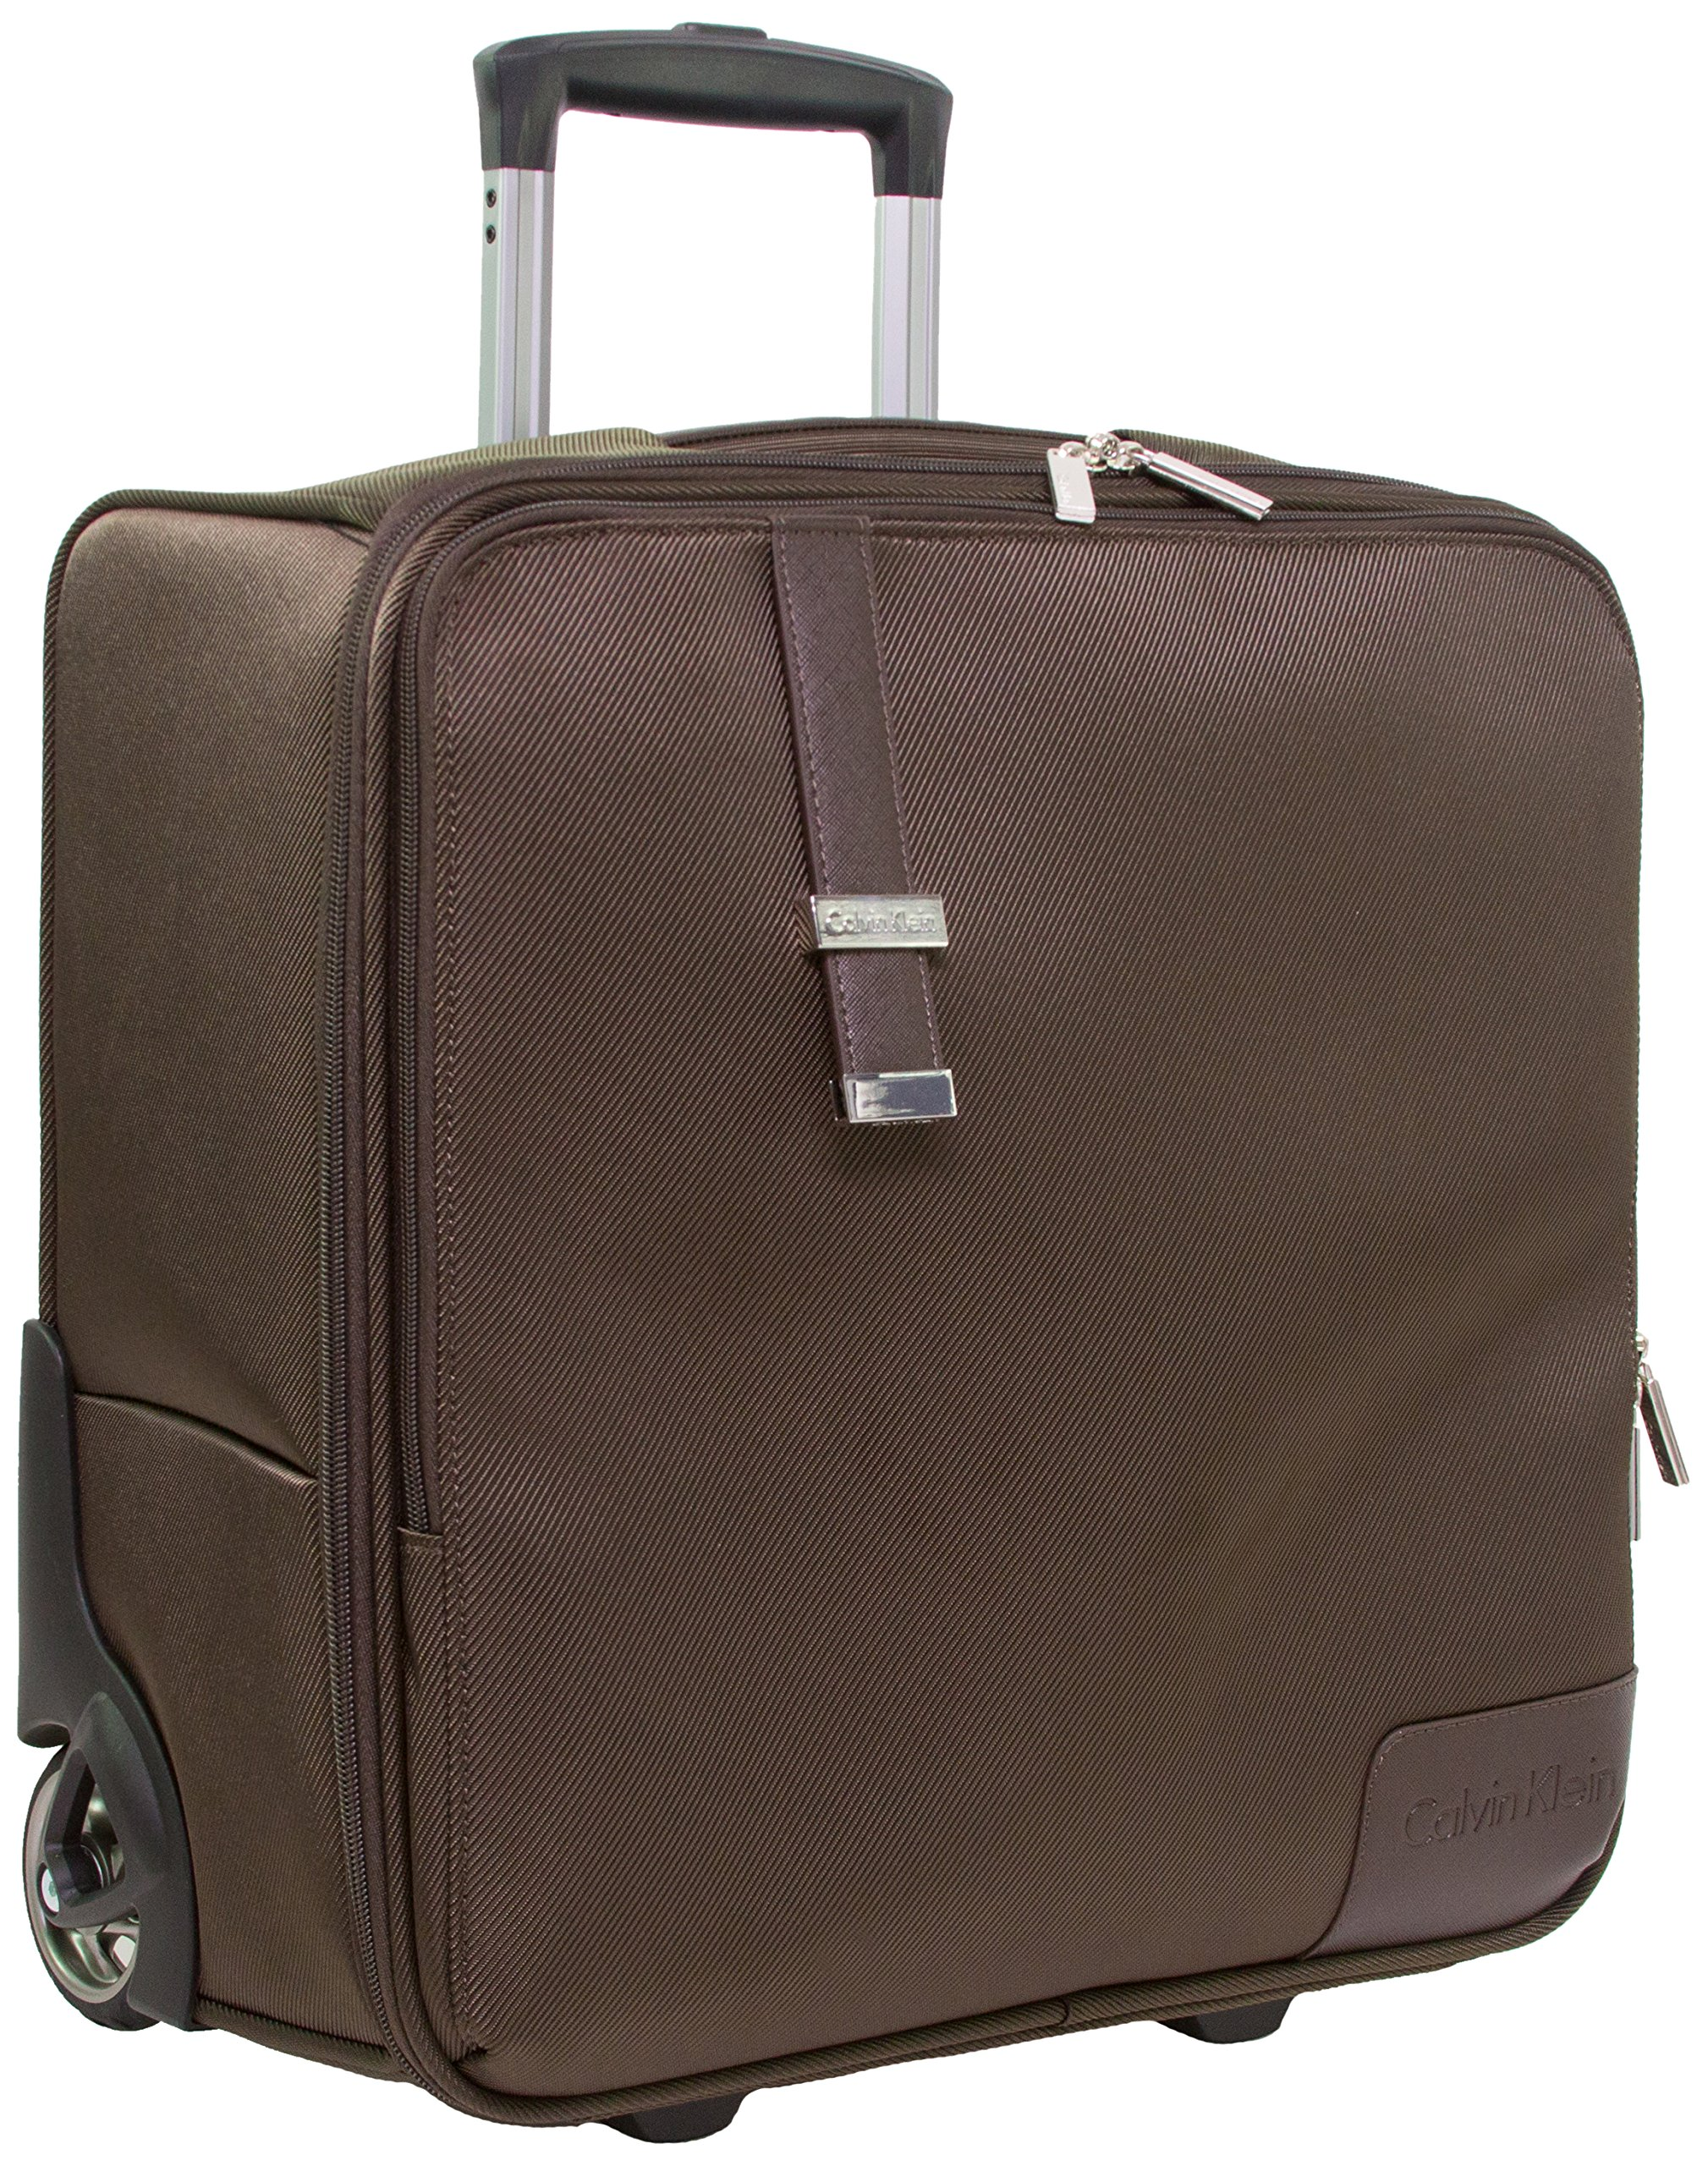 Calvin Klein Dylan Pilot Case, Brown by Calvin Klein